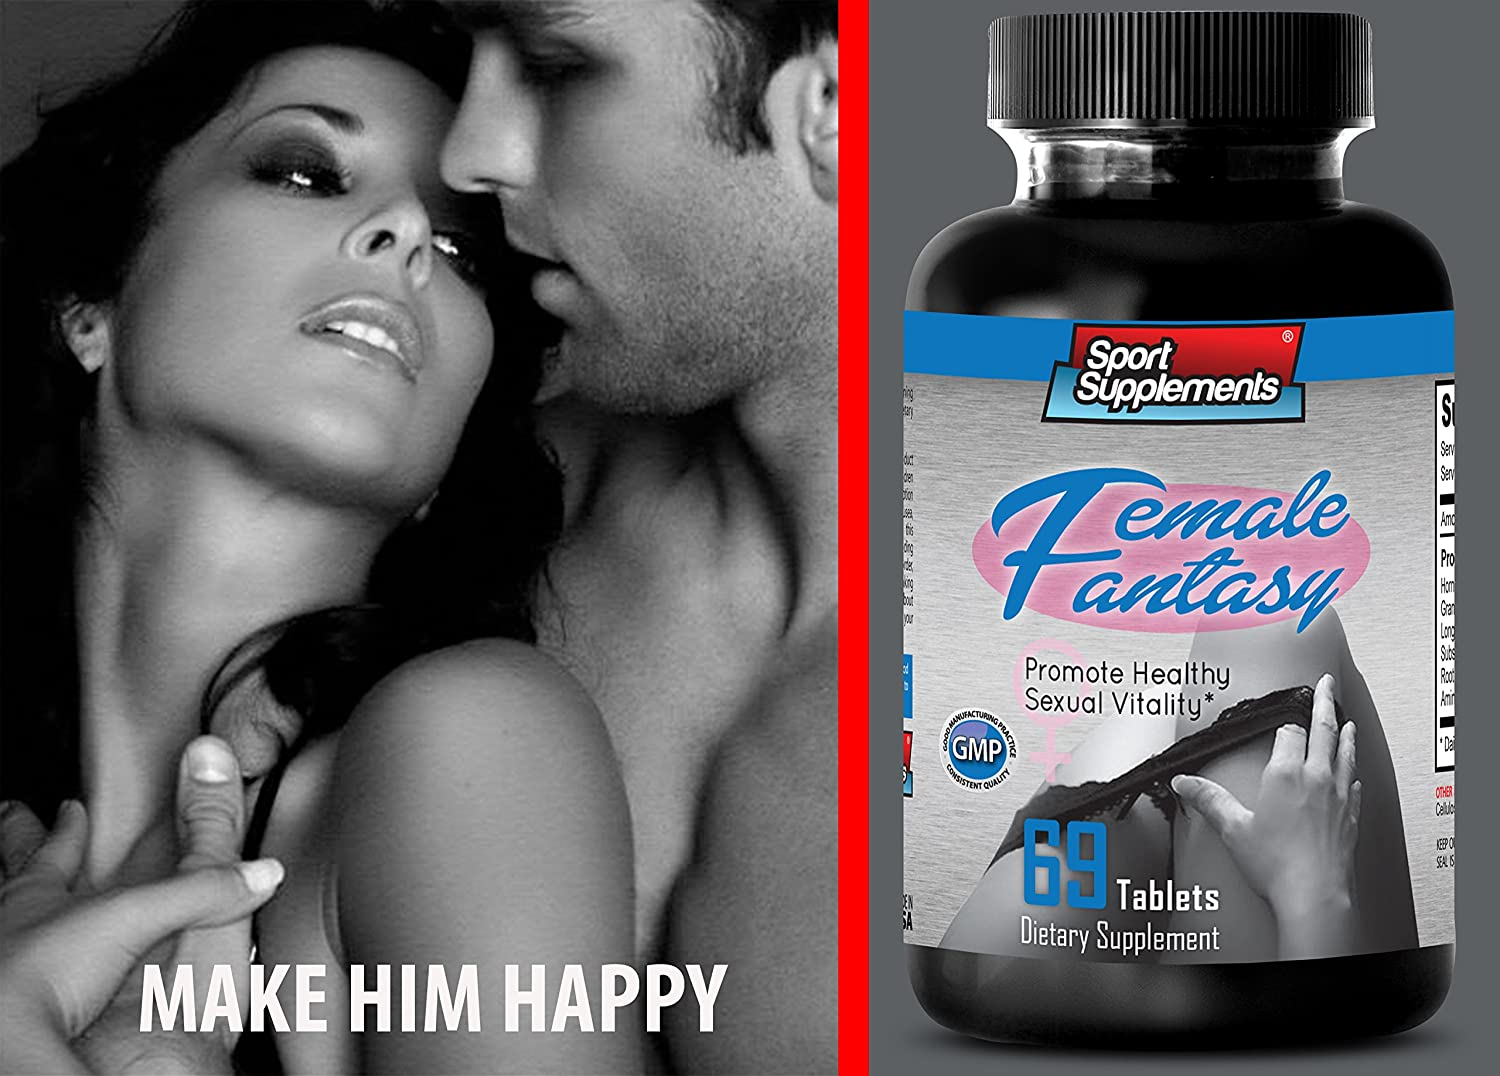 Amazon.com: Sex Drive Booster for Females - Female Fantasy 742mg - To  Improve Women's Sexual Desire, Overall Satisfaction, Increases Sexual Flame  (1 Bottle ...